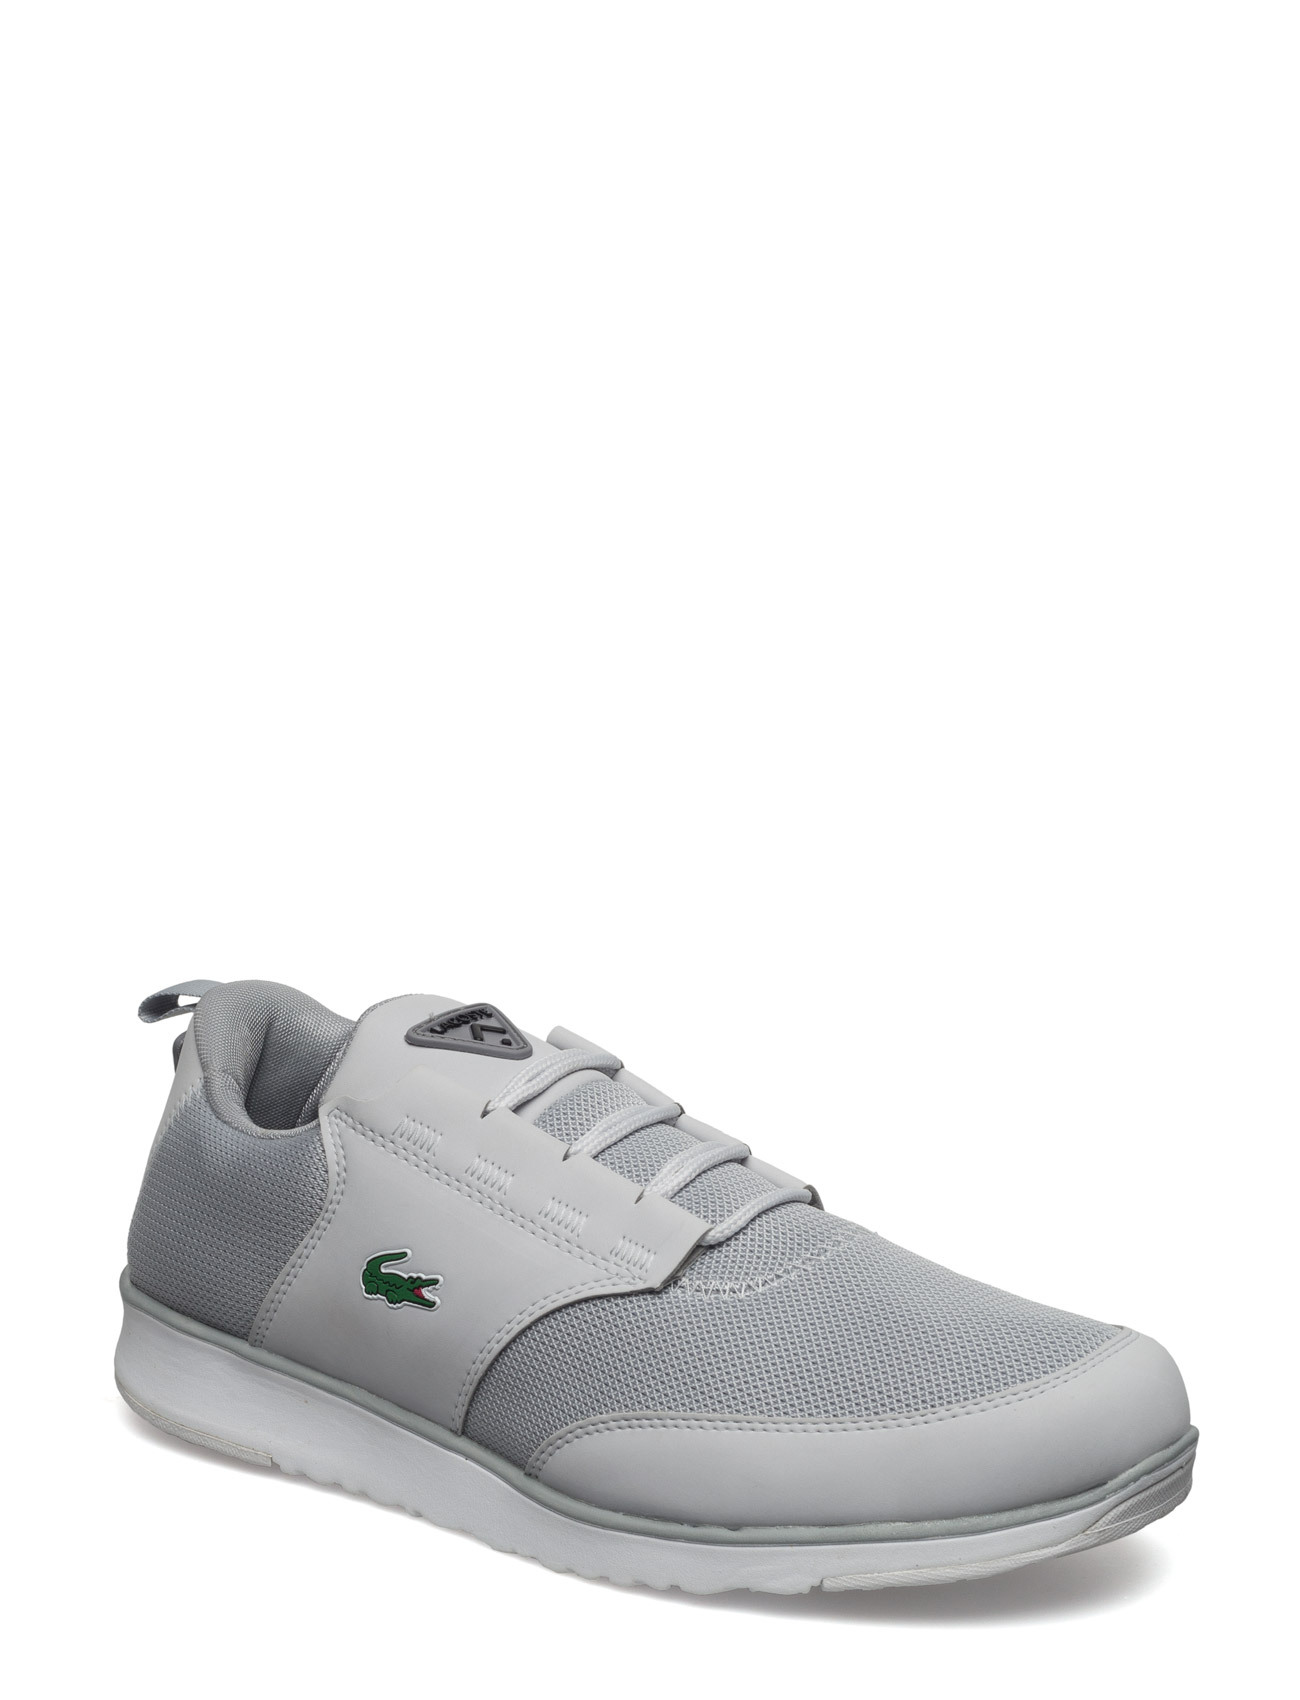 lacoste shoes L.ight 217 1 fra boozt.com dk